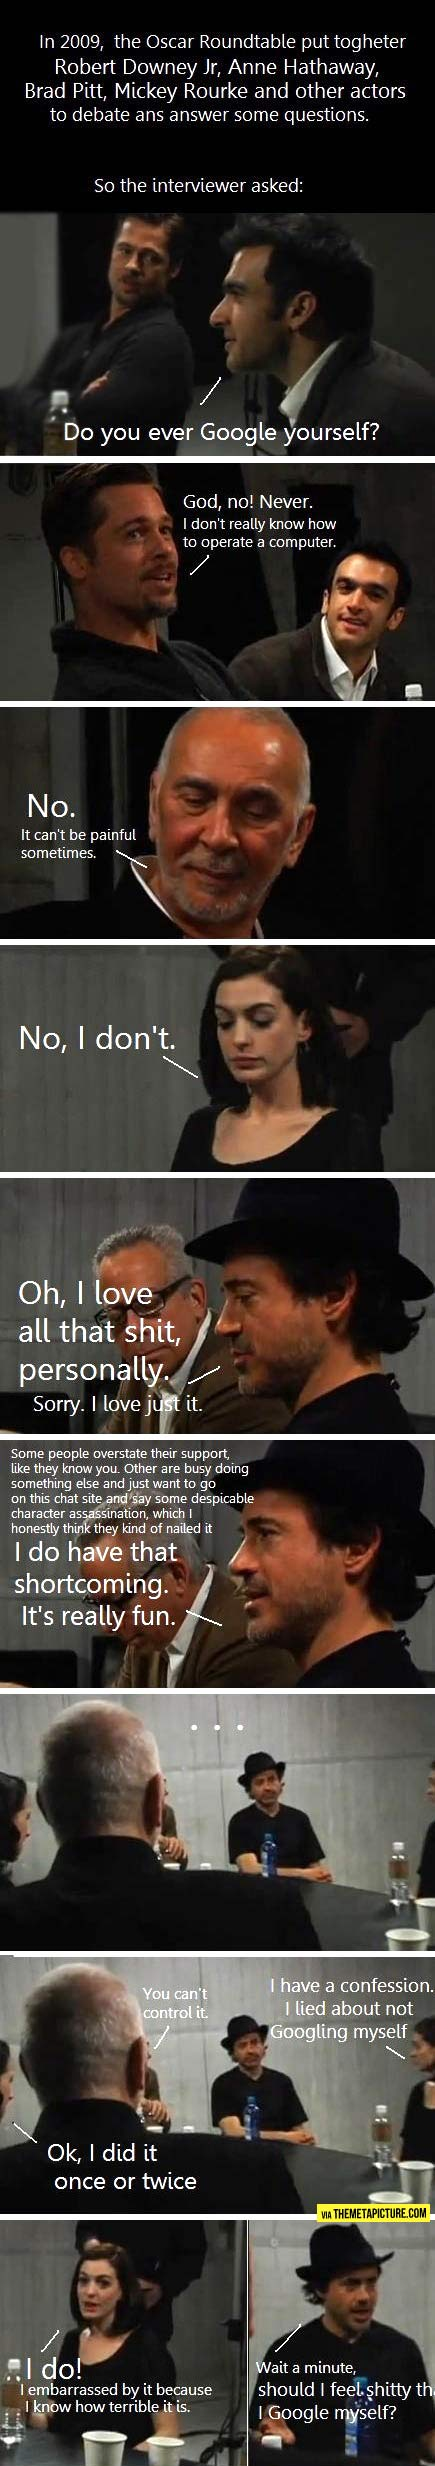 Yet another reason to love Robert Downey Jr…